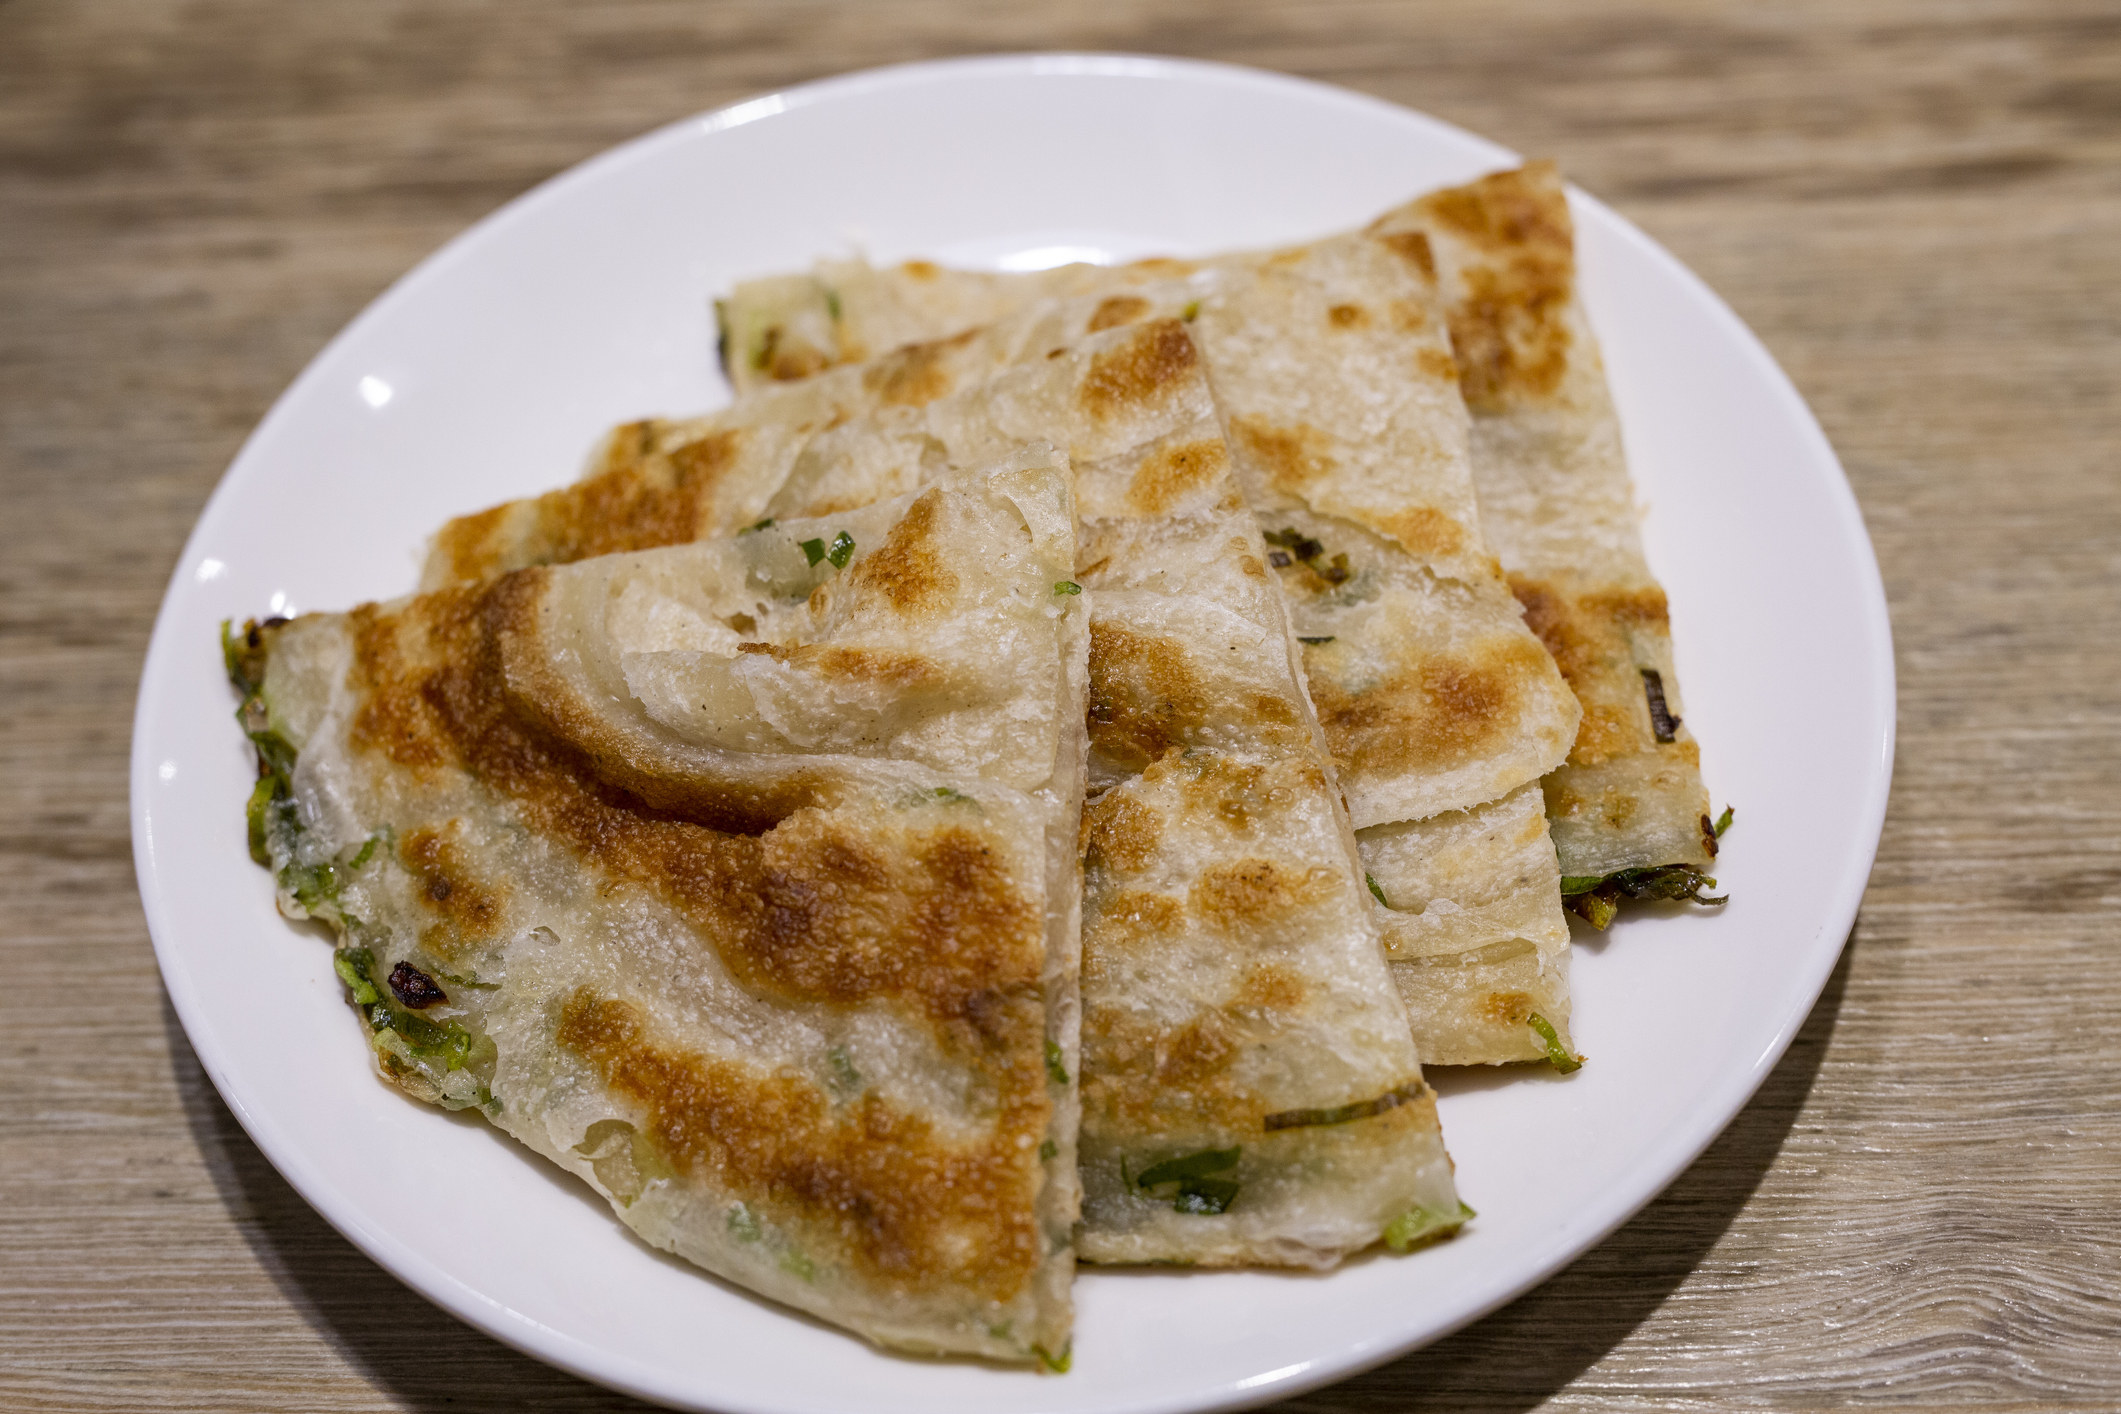 A plate of scallion pancakes sliced into triangles